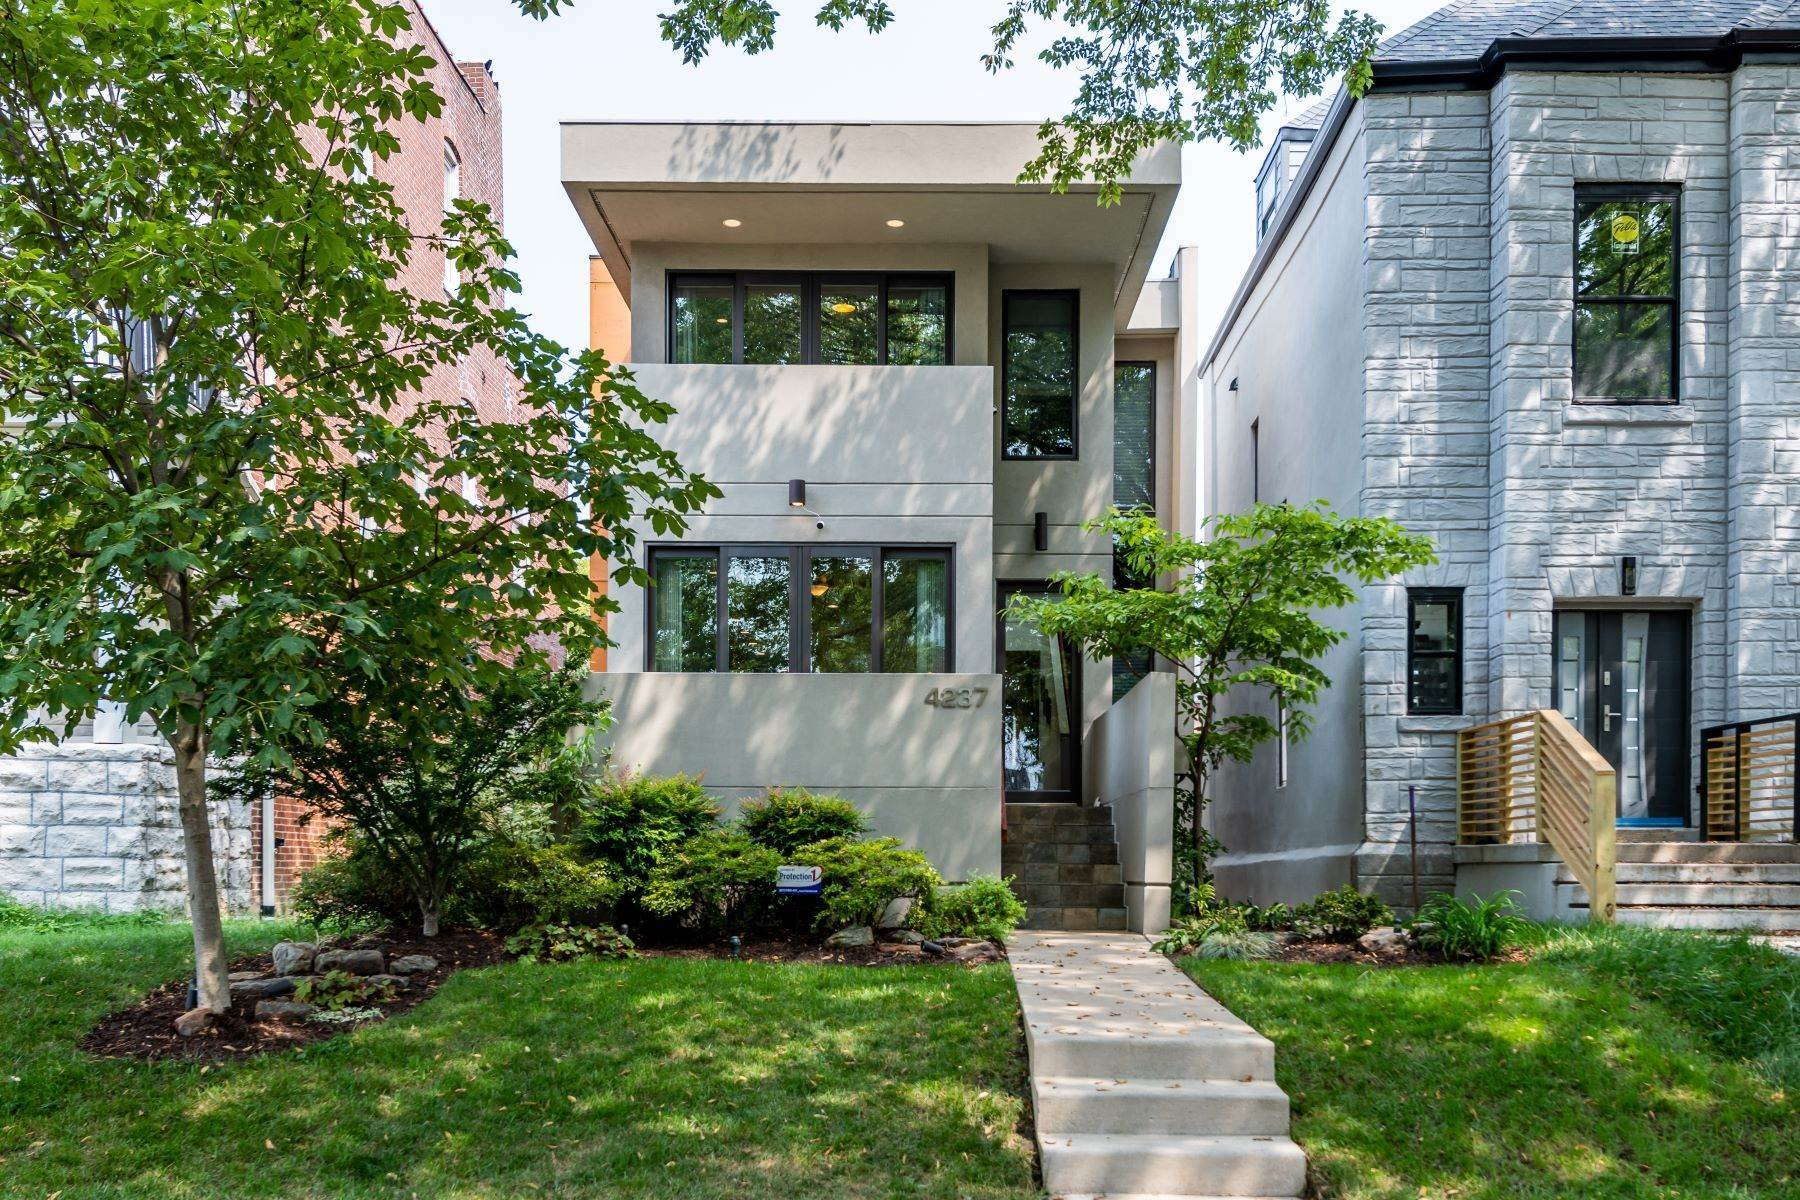 Single Family Homes for Sale at Celebration of Contemporary Design in CWE 4237 McPherson Avenue St. Louis, Missouri 63108 United States